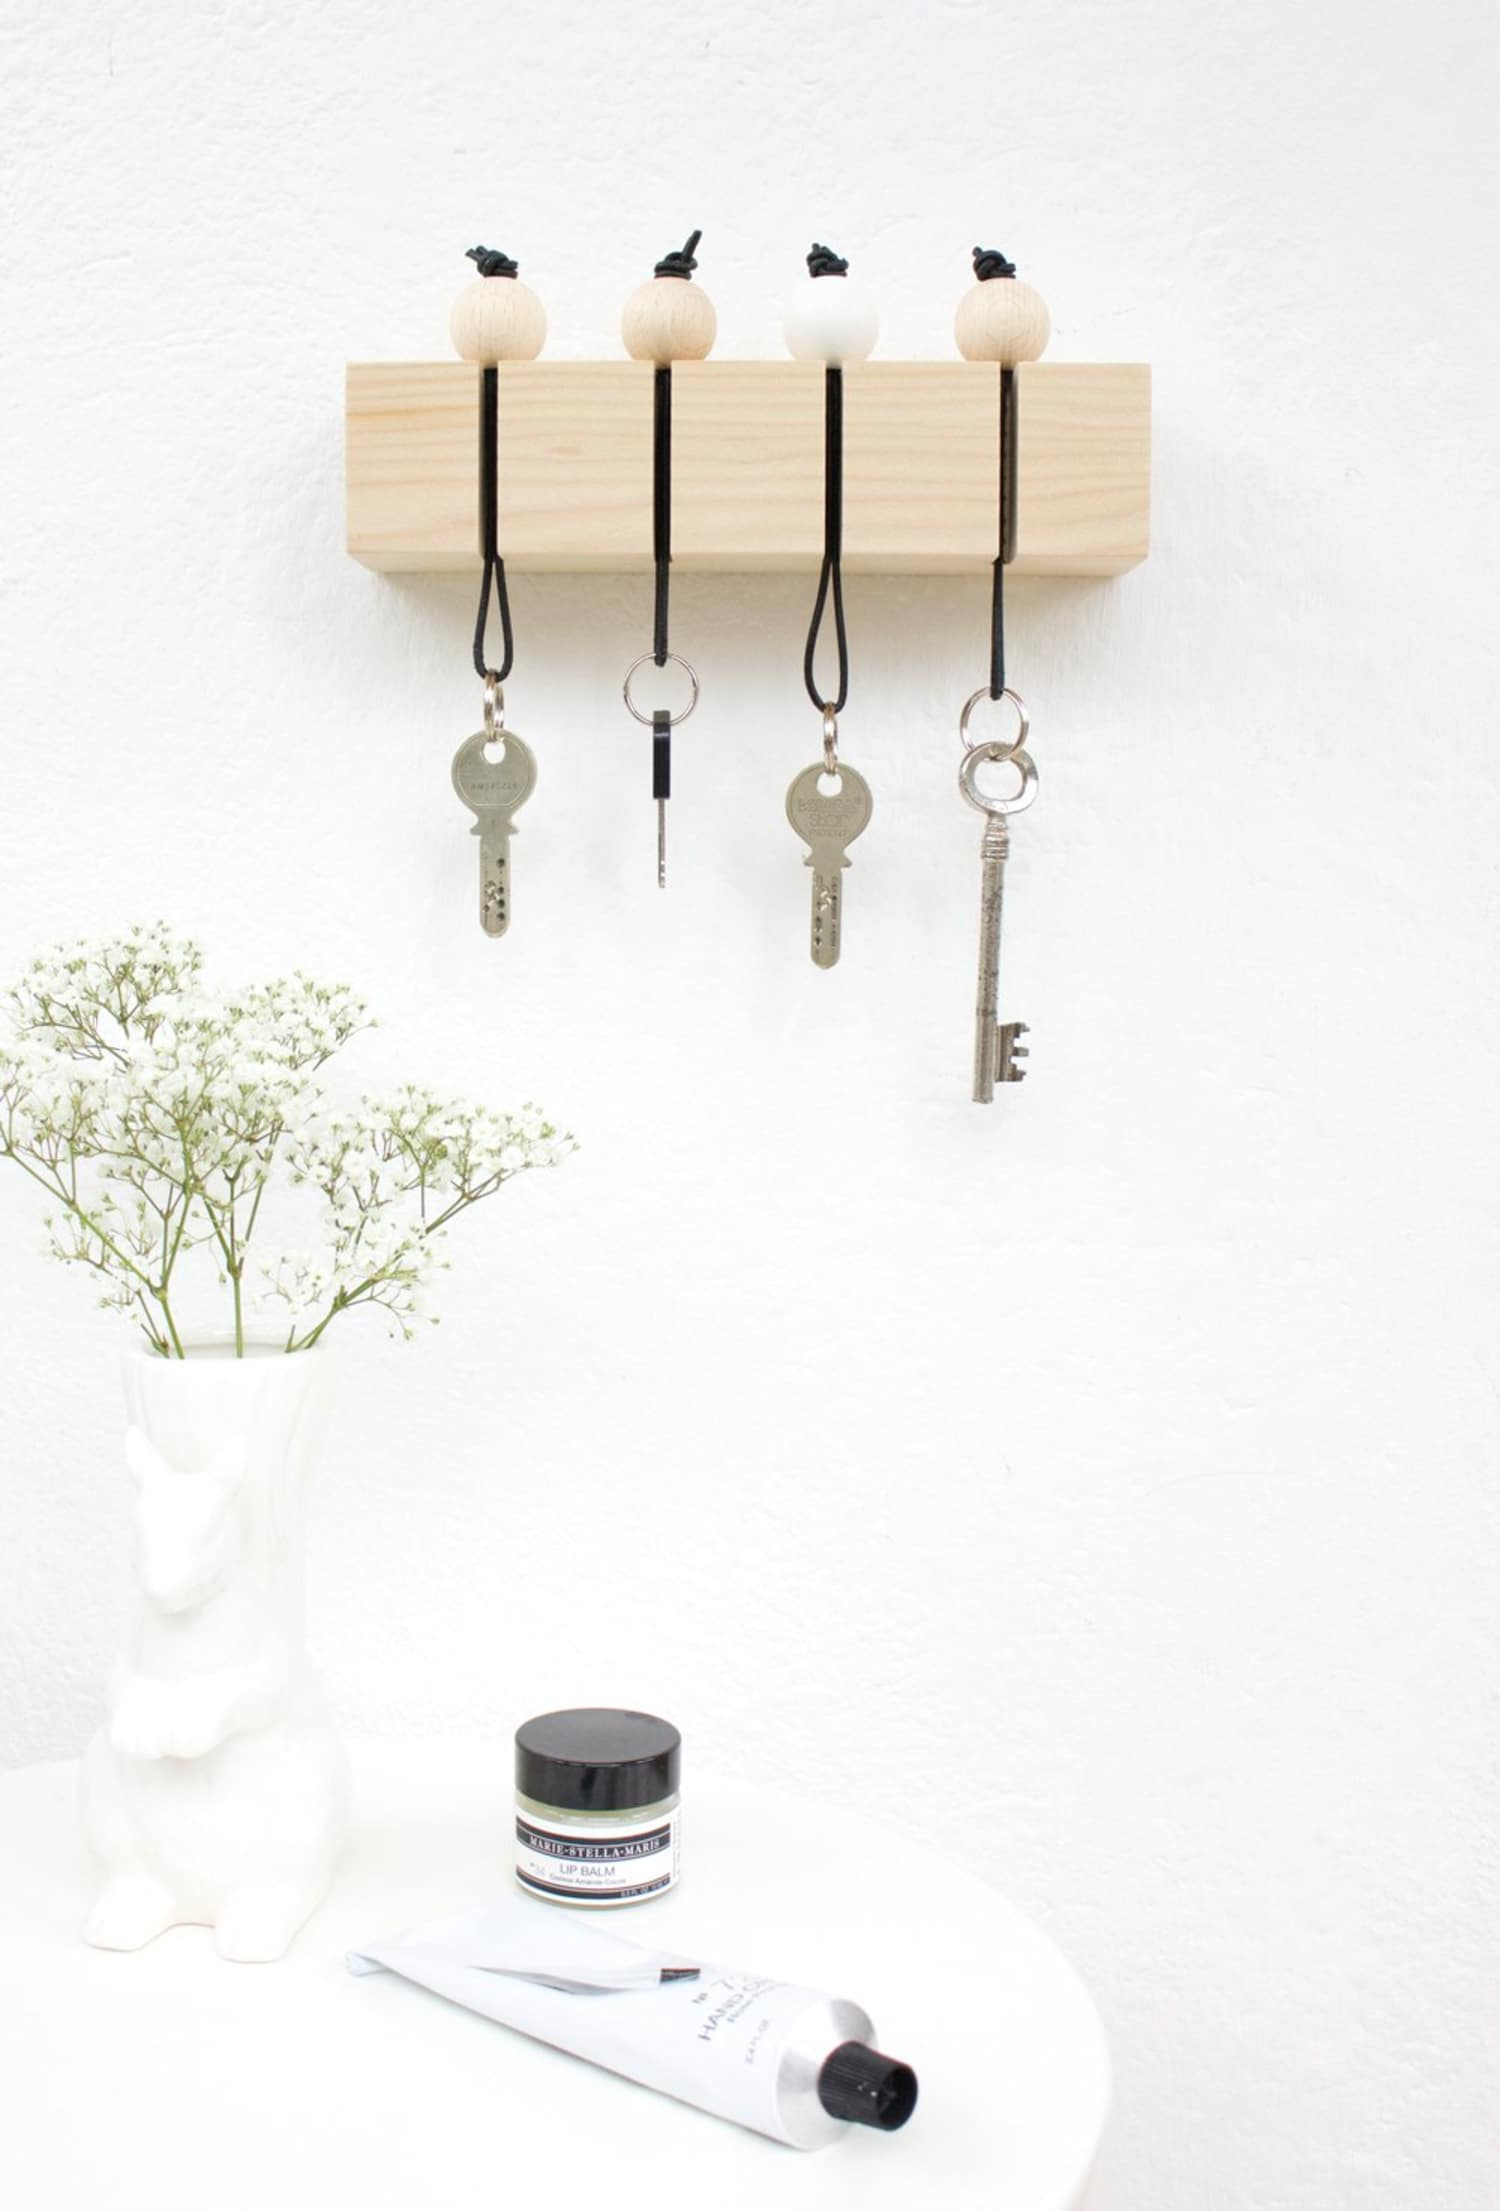 Never Misplace Keys Again: DIY Ways To Store Lots of The Little Losable Things